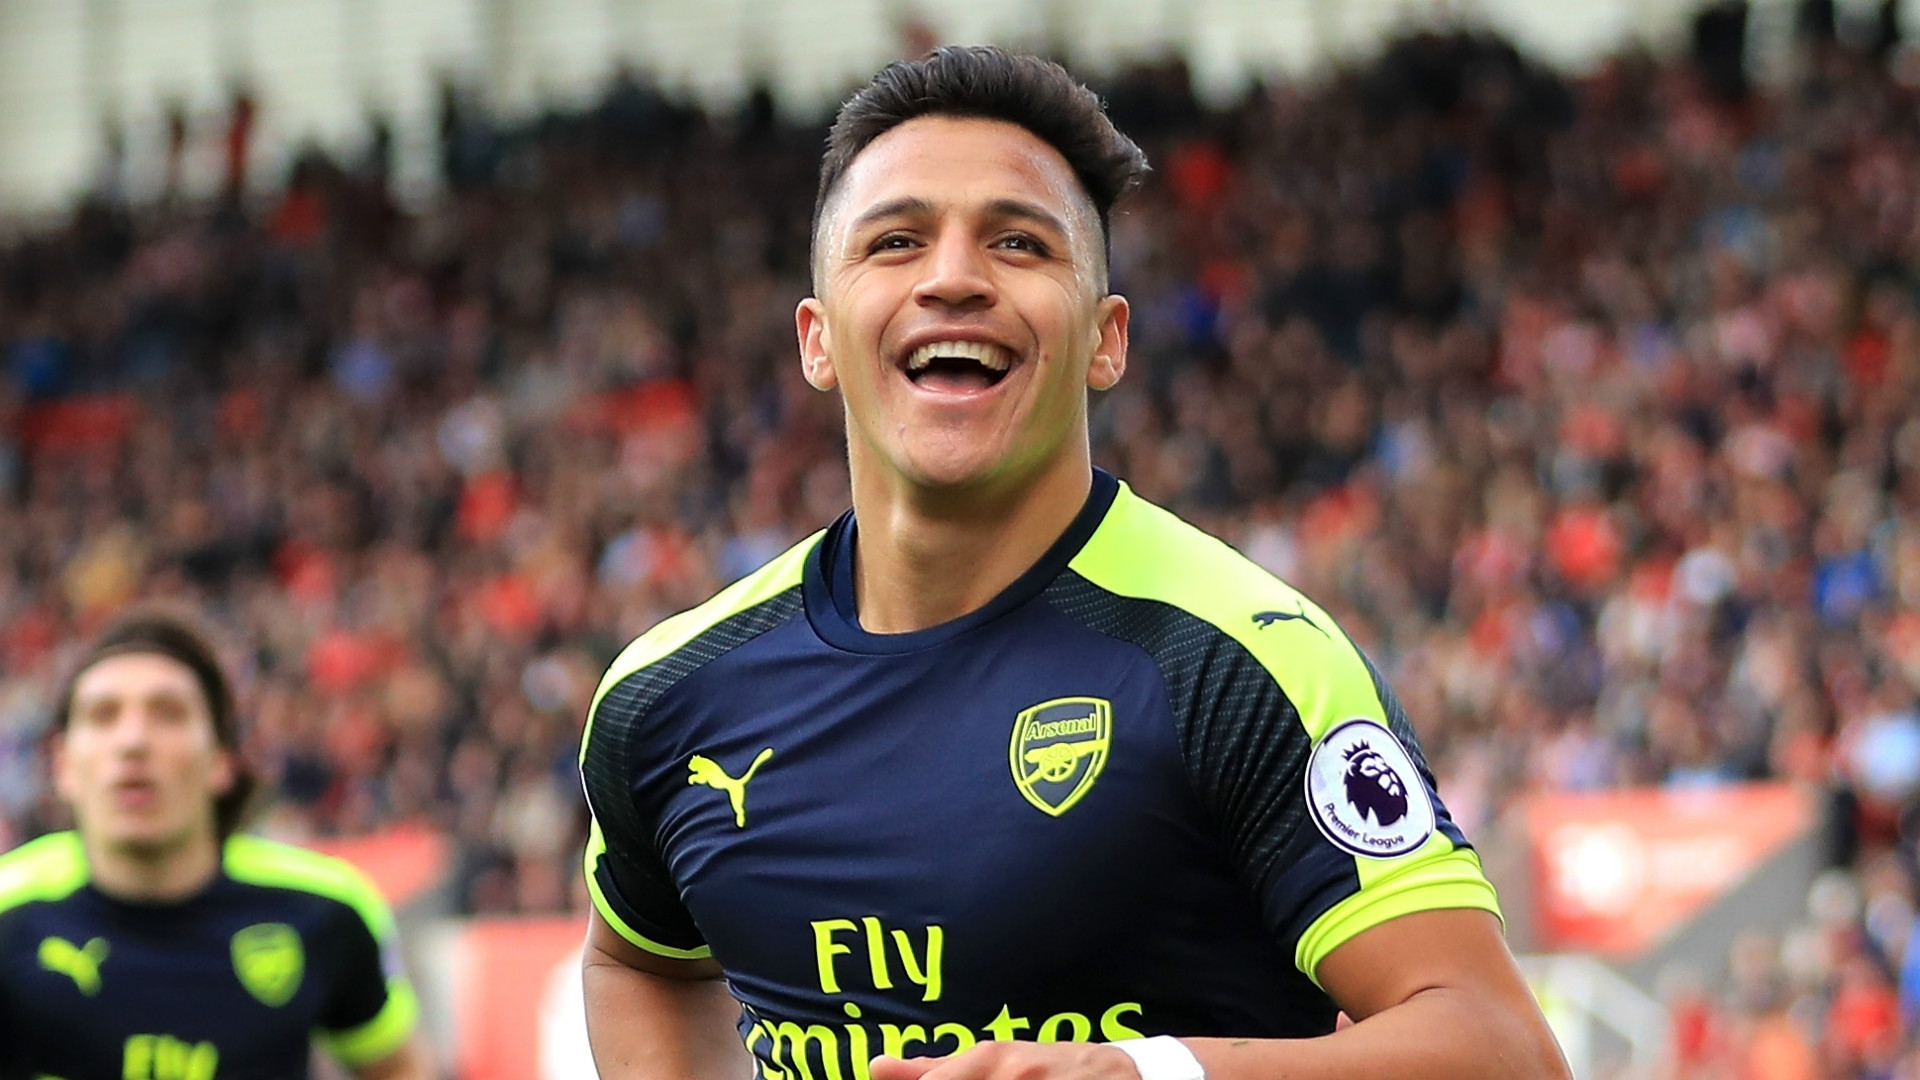 t's also said that at one stage the possibility of a switch between City's forward Aguero and Sanchez was issued as a proposition.